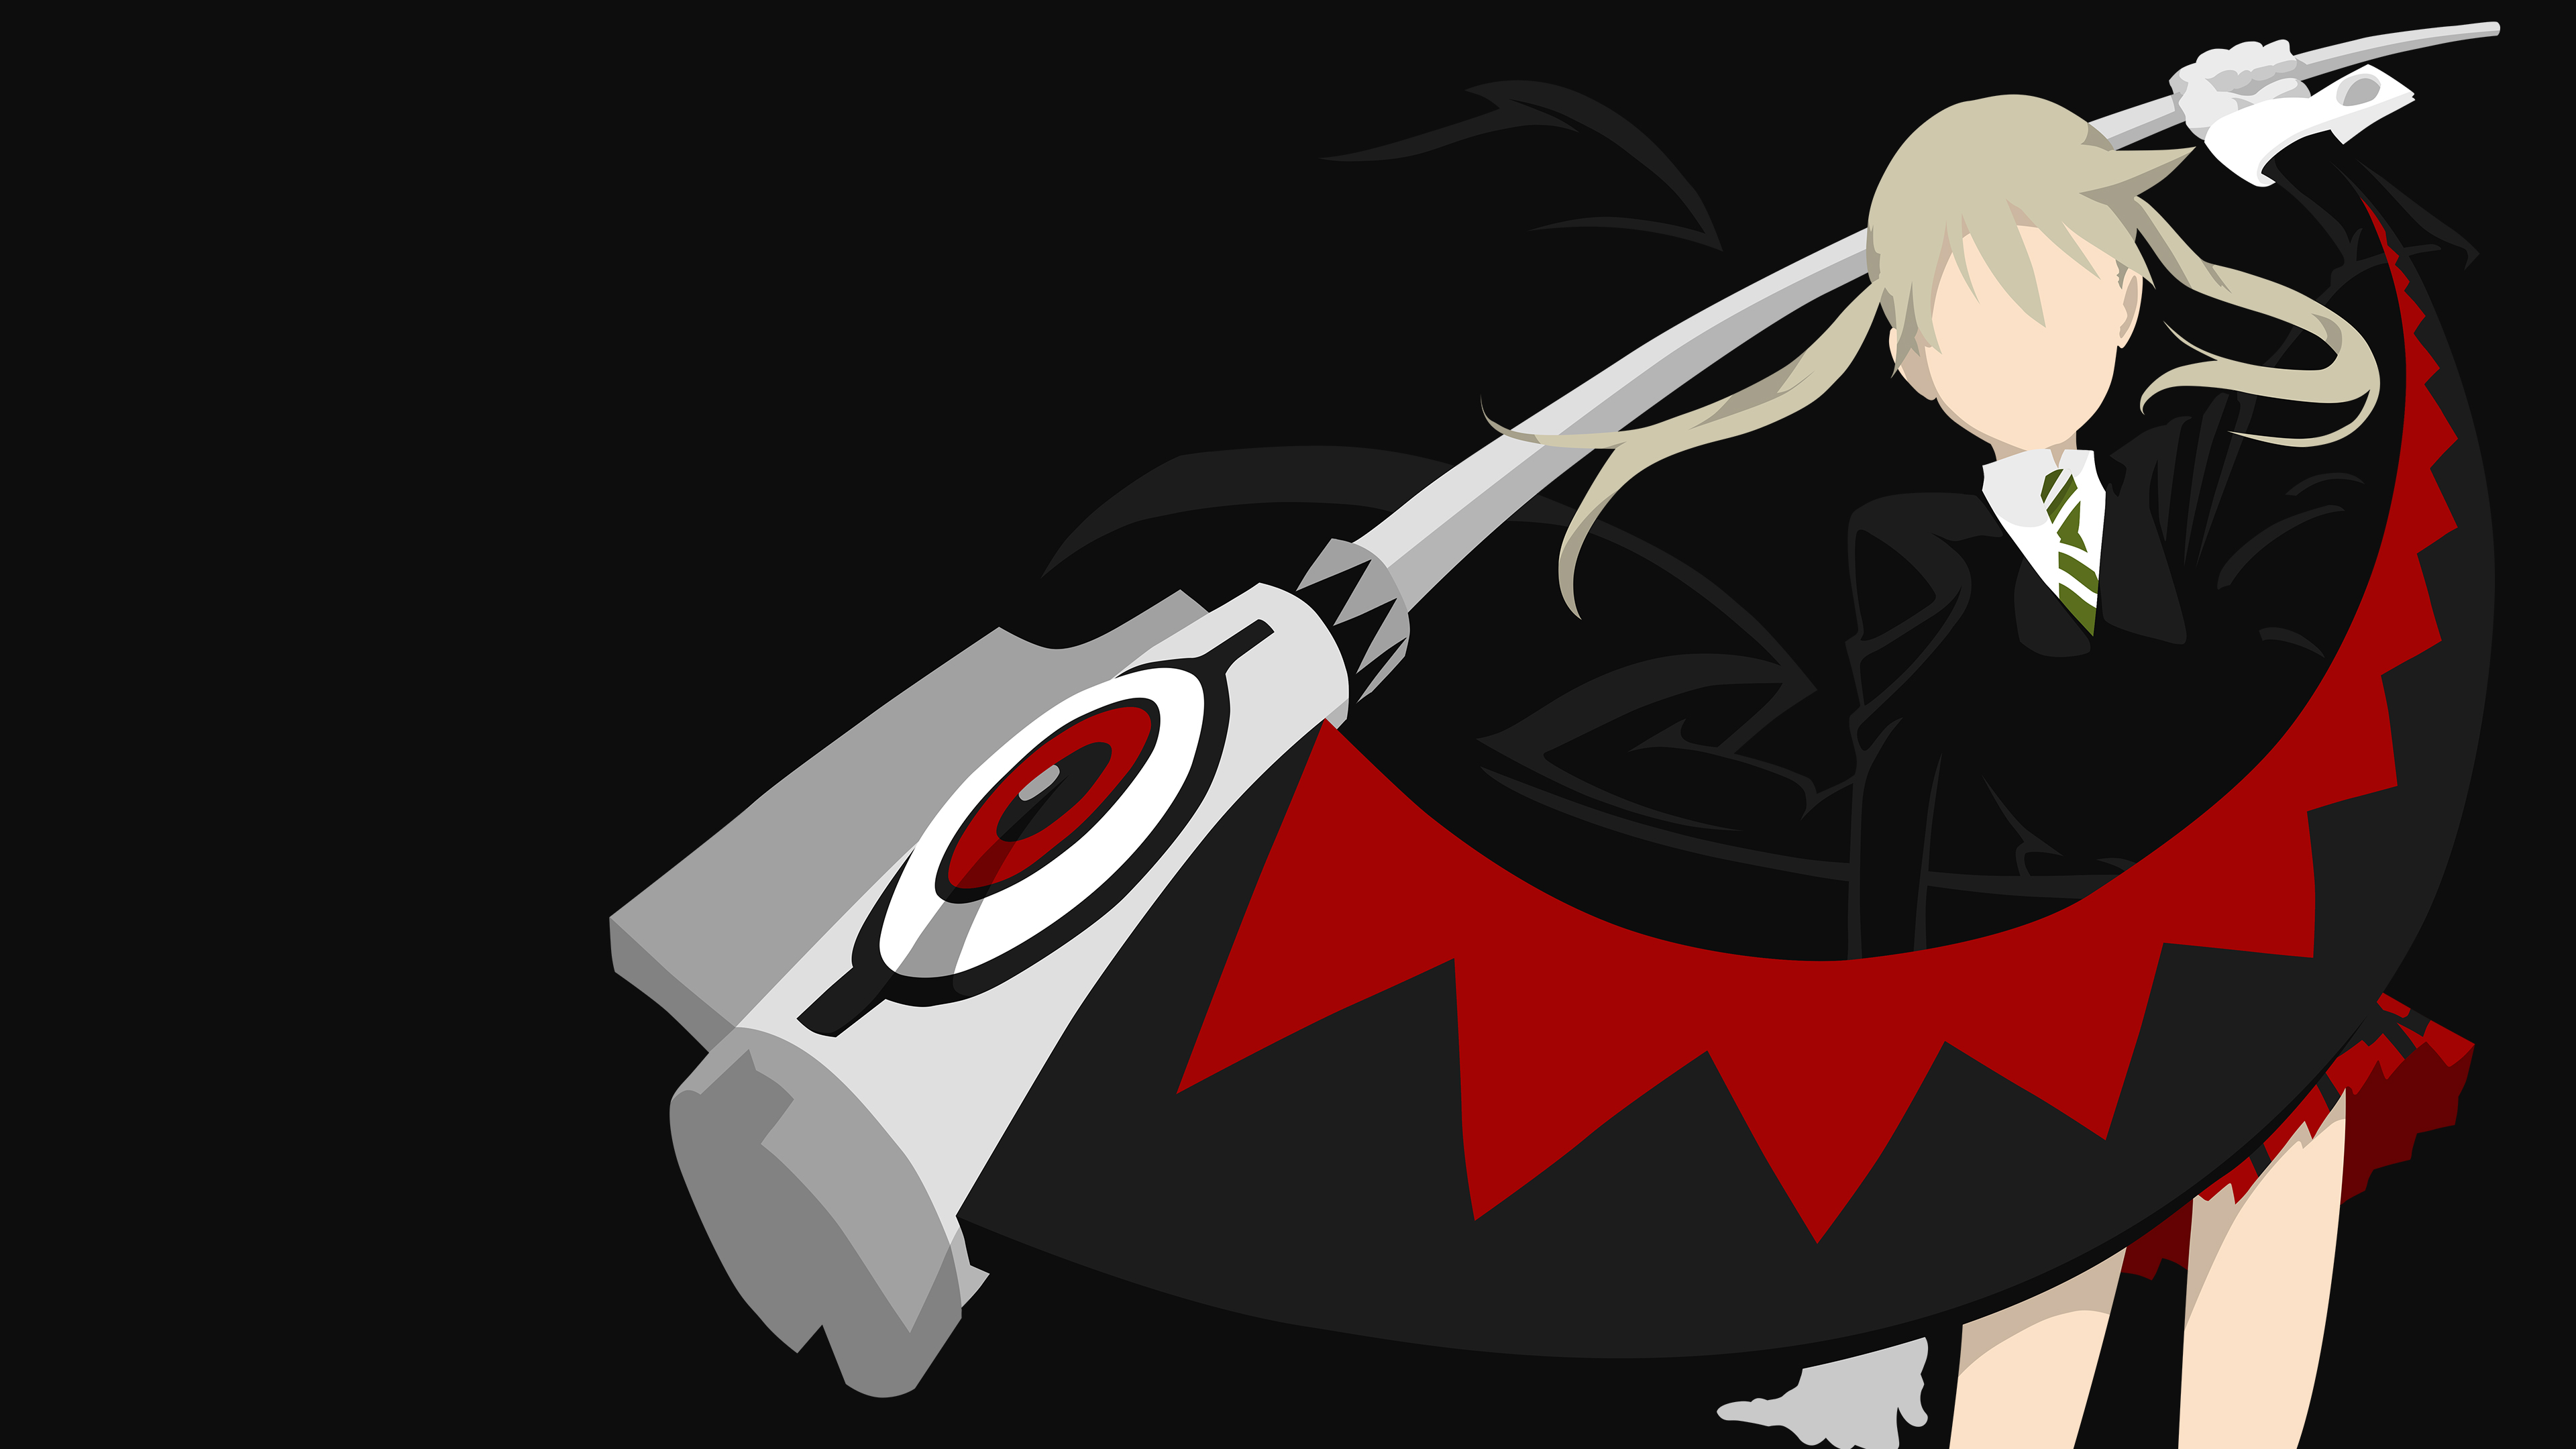 Maka Albarn Dark Grey Wallpaper